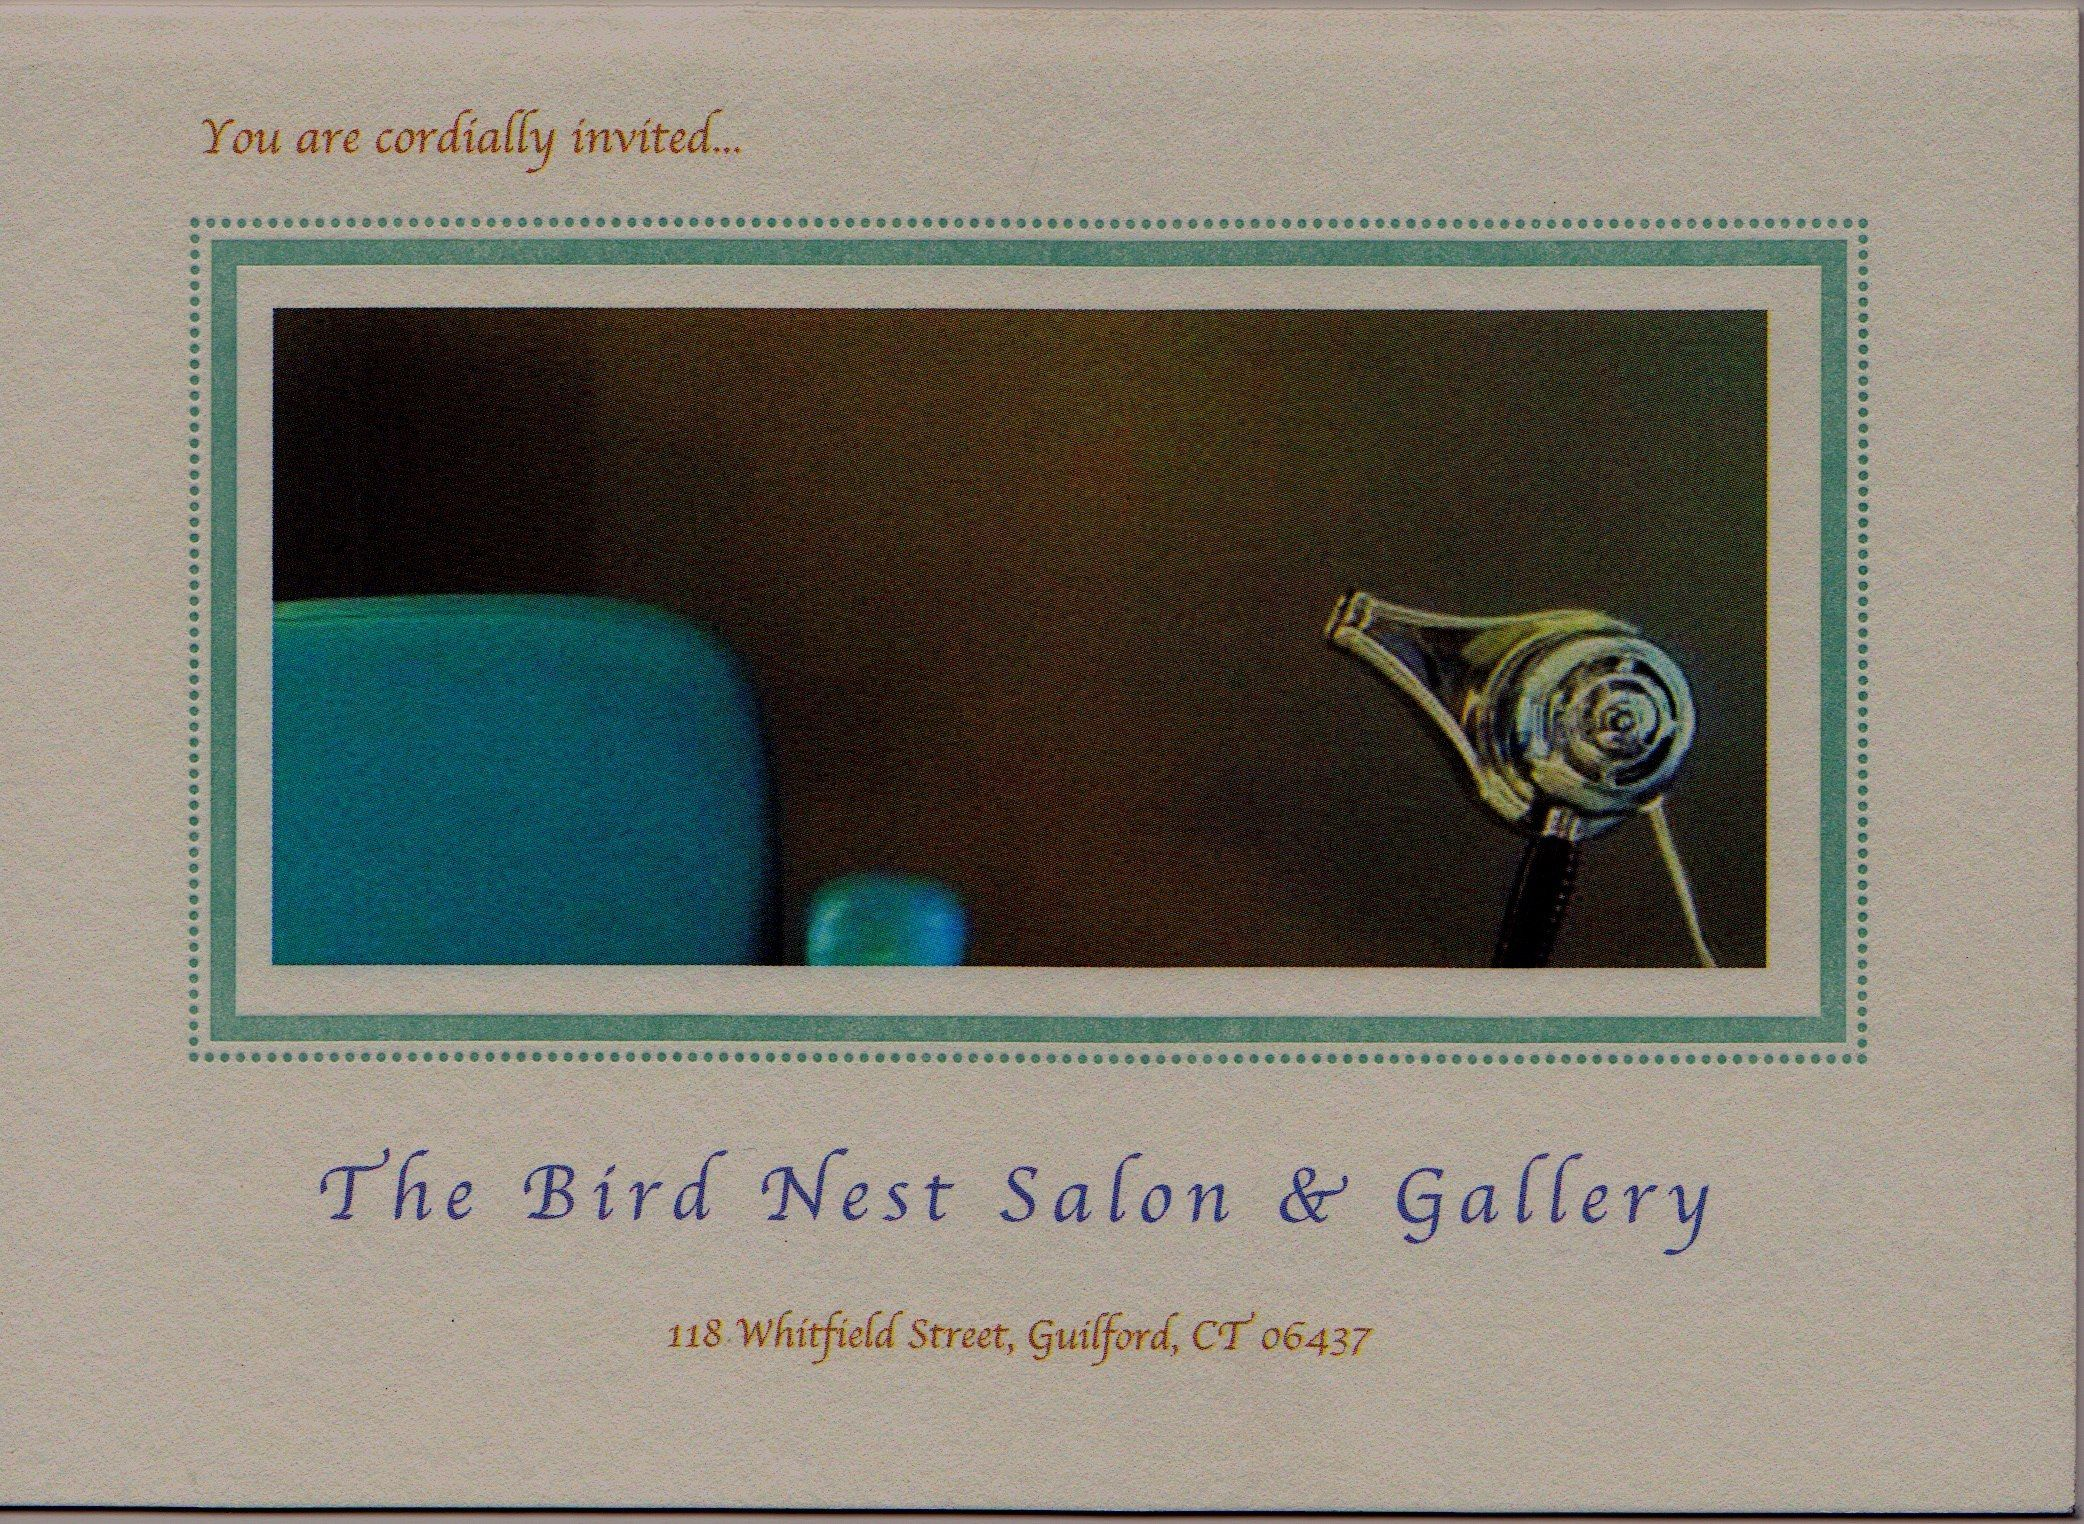 It S Not Too Late To Get In On This Stylish Offer From The Bird Nest Salon